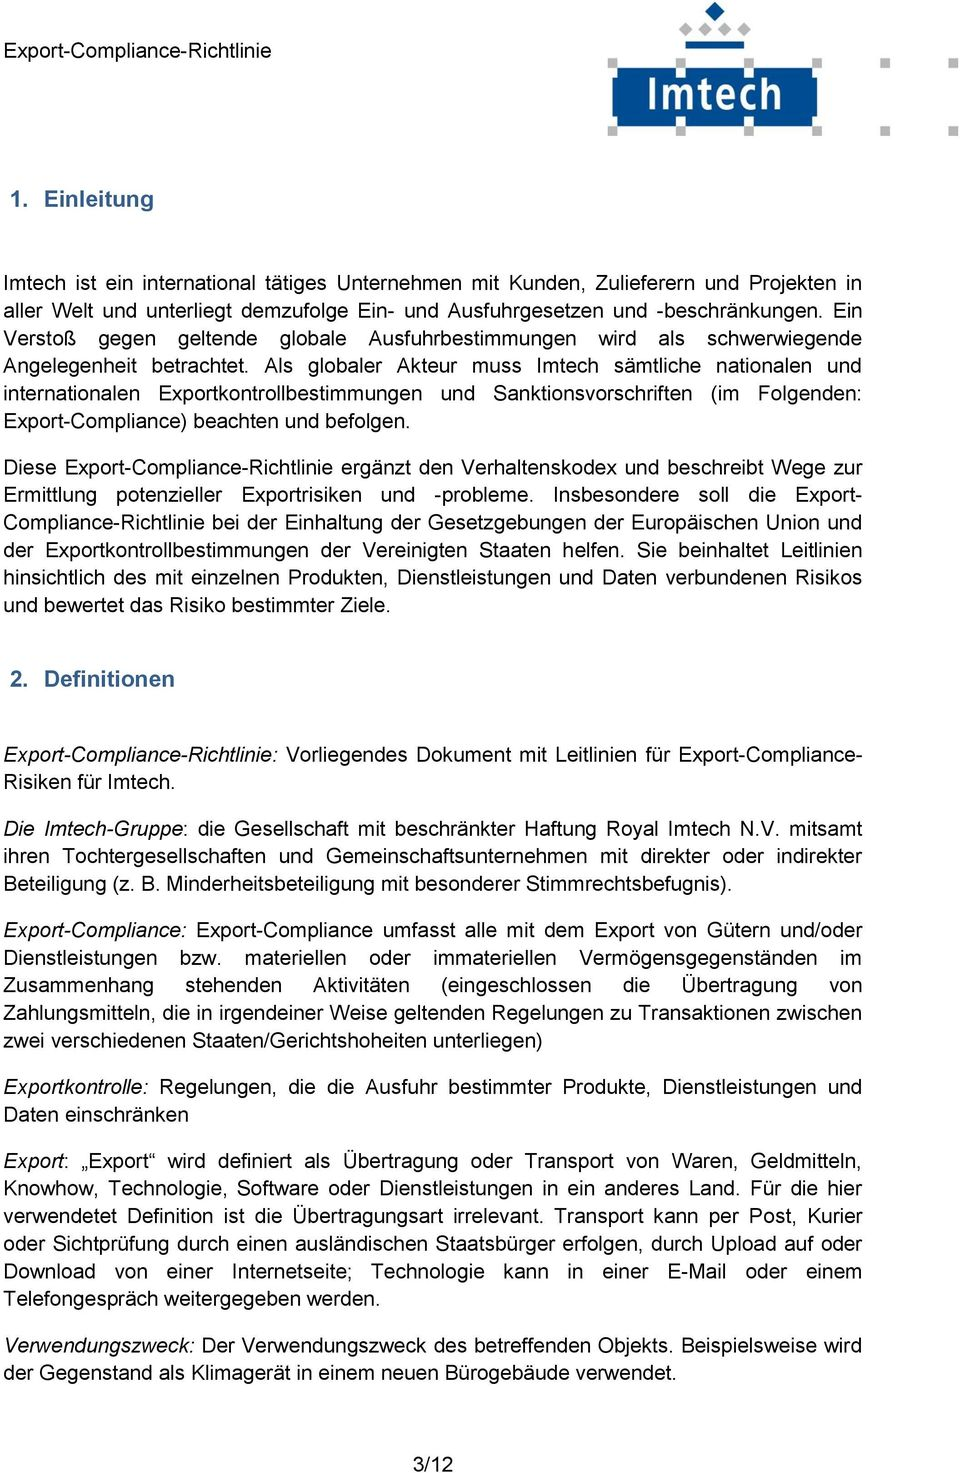 Compliance Management System Der Muster Ag Pdf Free Download 9